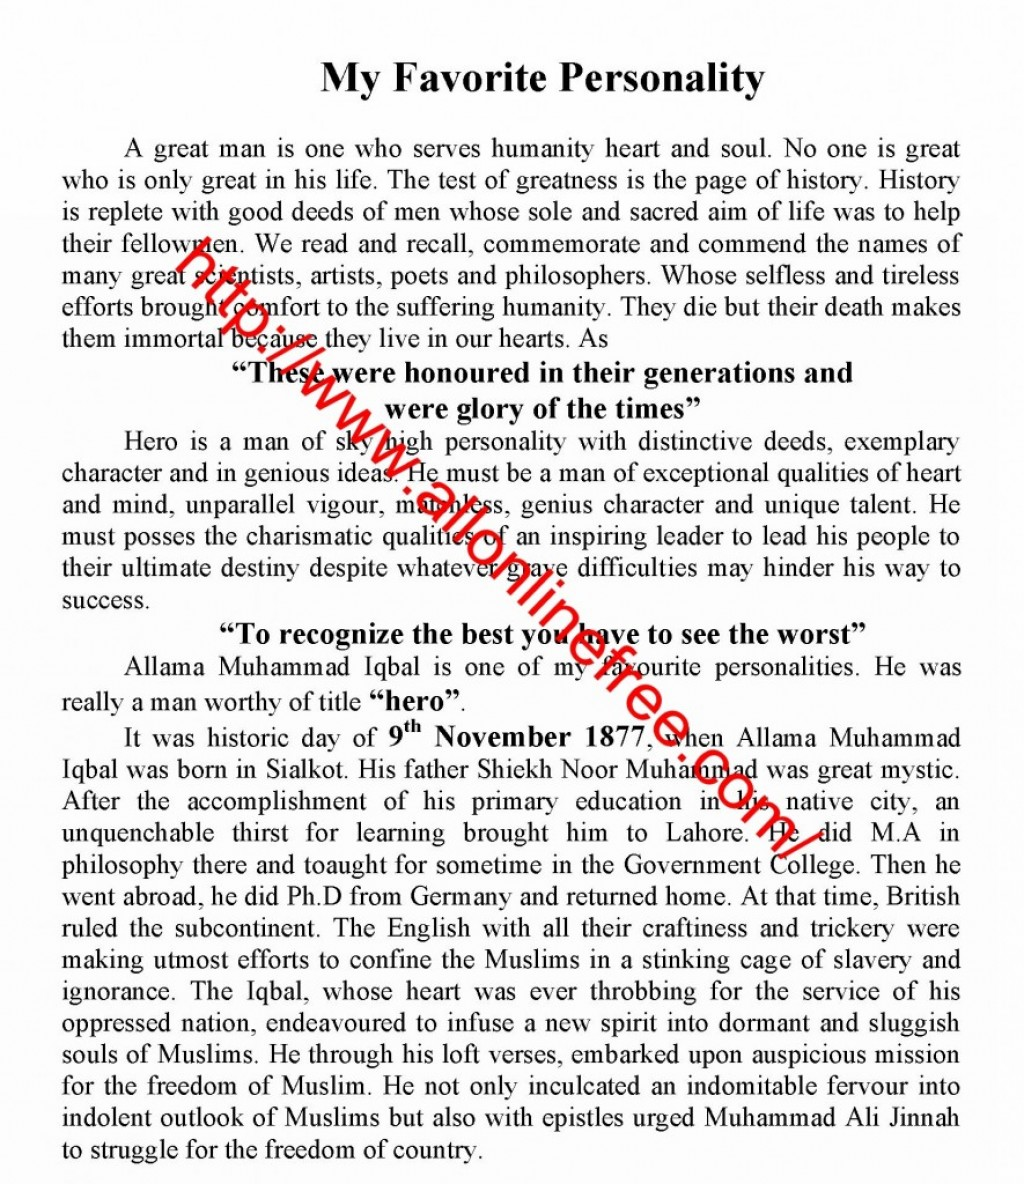 010 Essay Example Descriptive About Person Sample Personality Writing O 99a2f2659718e3c9 001 Pdf Short Examples Famous Free How To Describe Stunning A In Large